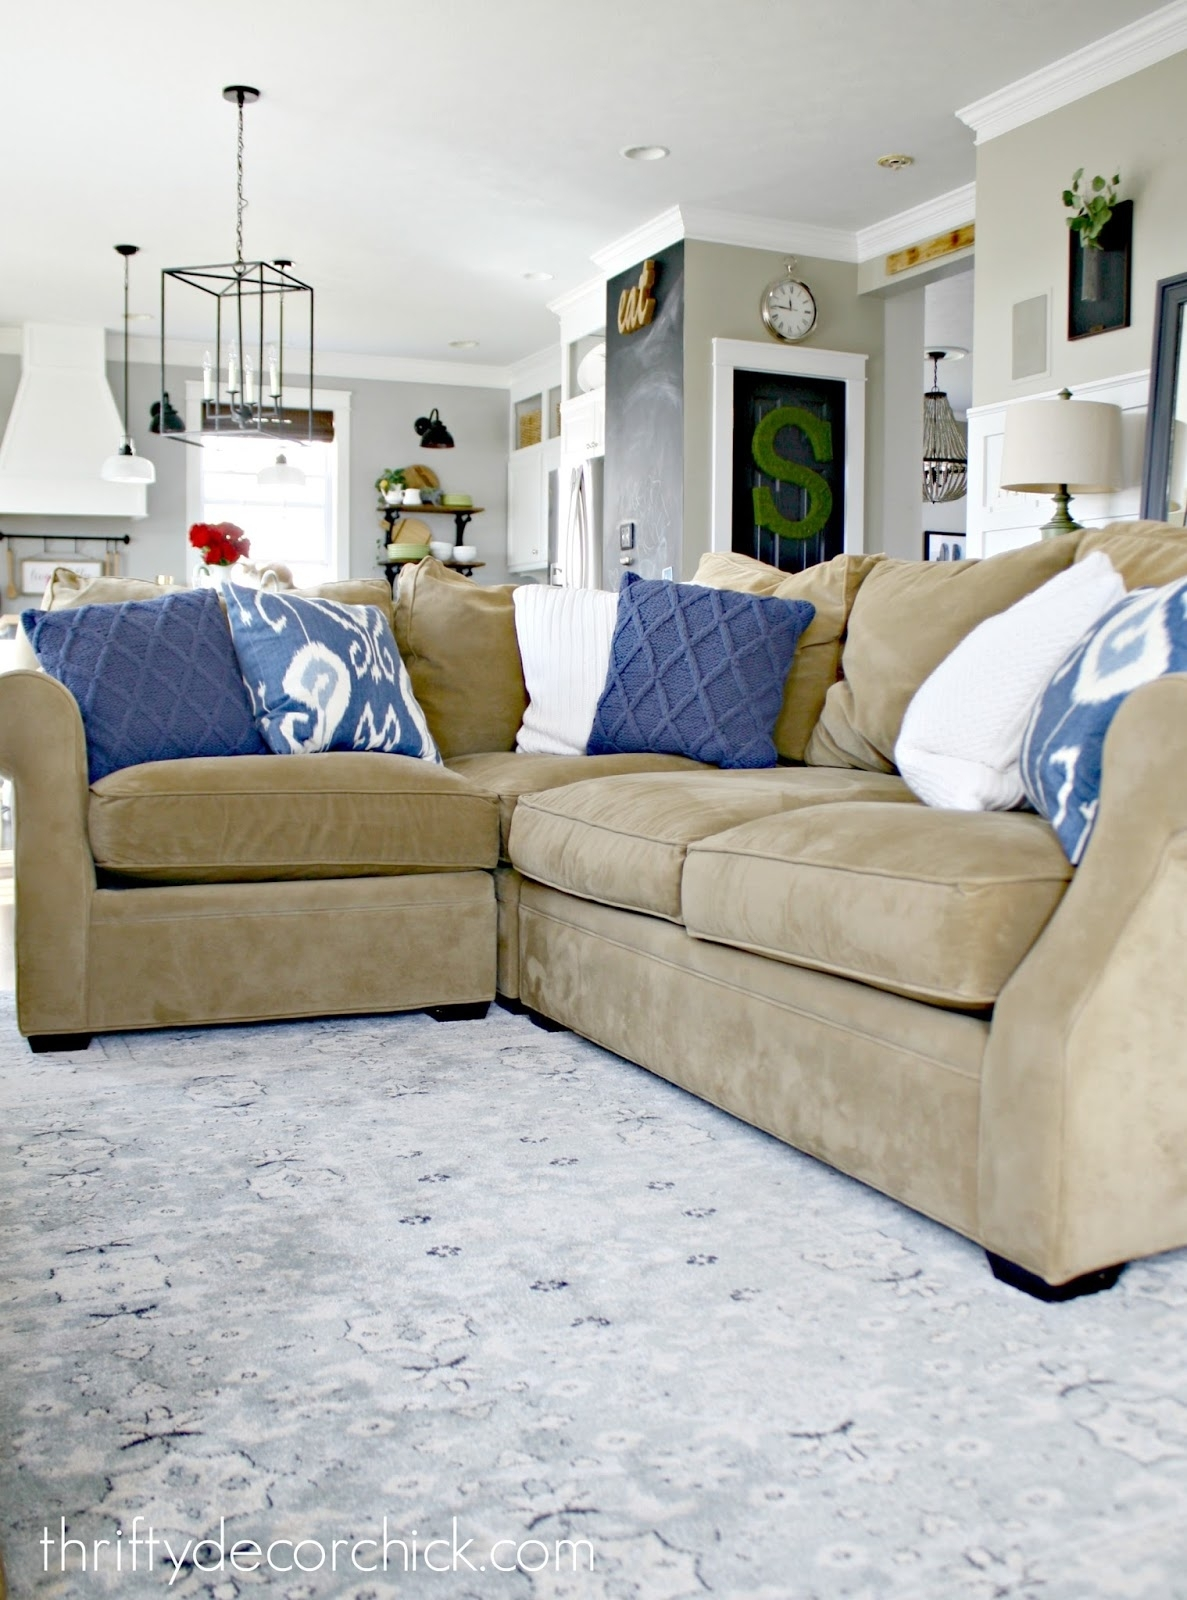 A Review Of Our Most Expensive Purchase! From Thrifty Decor Chick Within Harper Down 3 Piece Sectionals (Image 3 of 25)